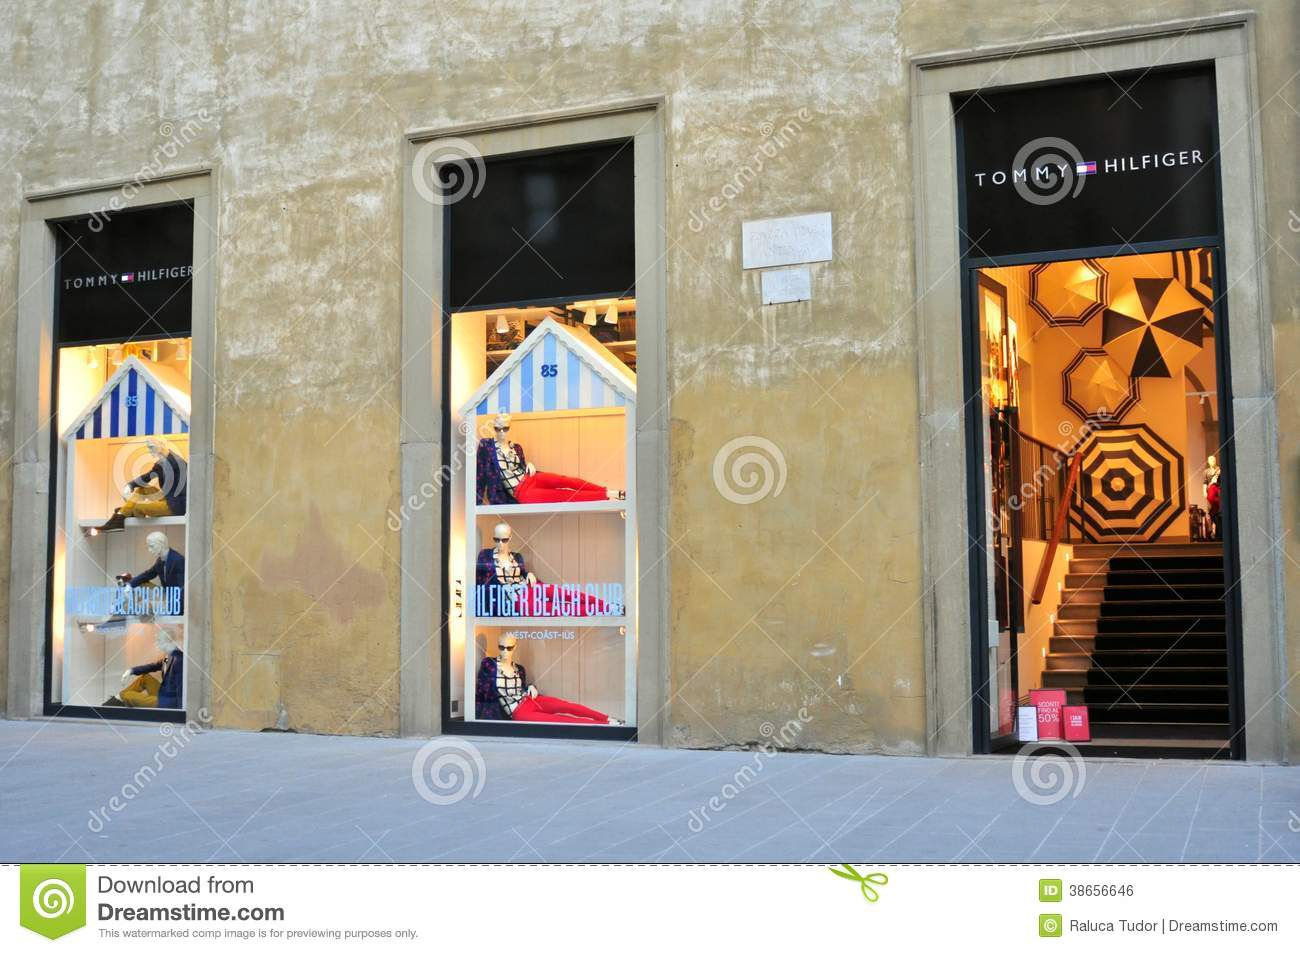 9f8cb96baef392 Tommy Hilfiger Clothing Store In Florence